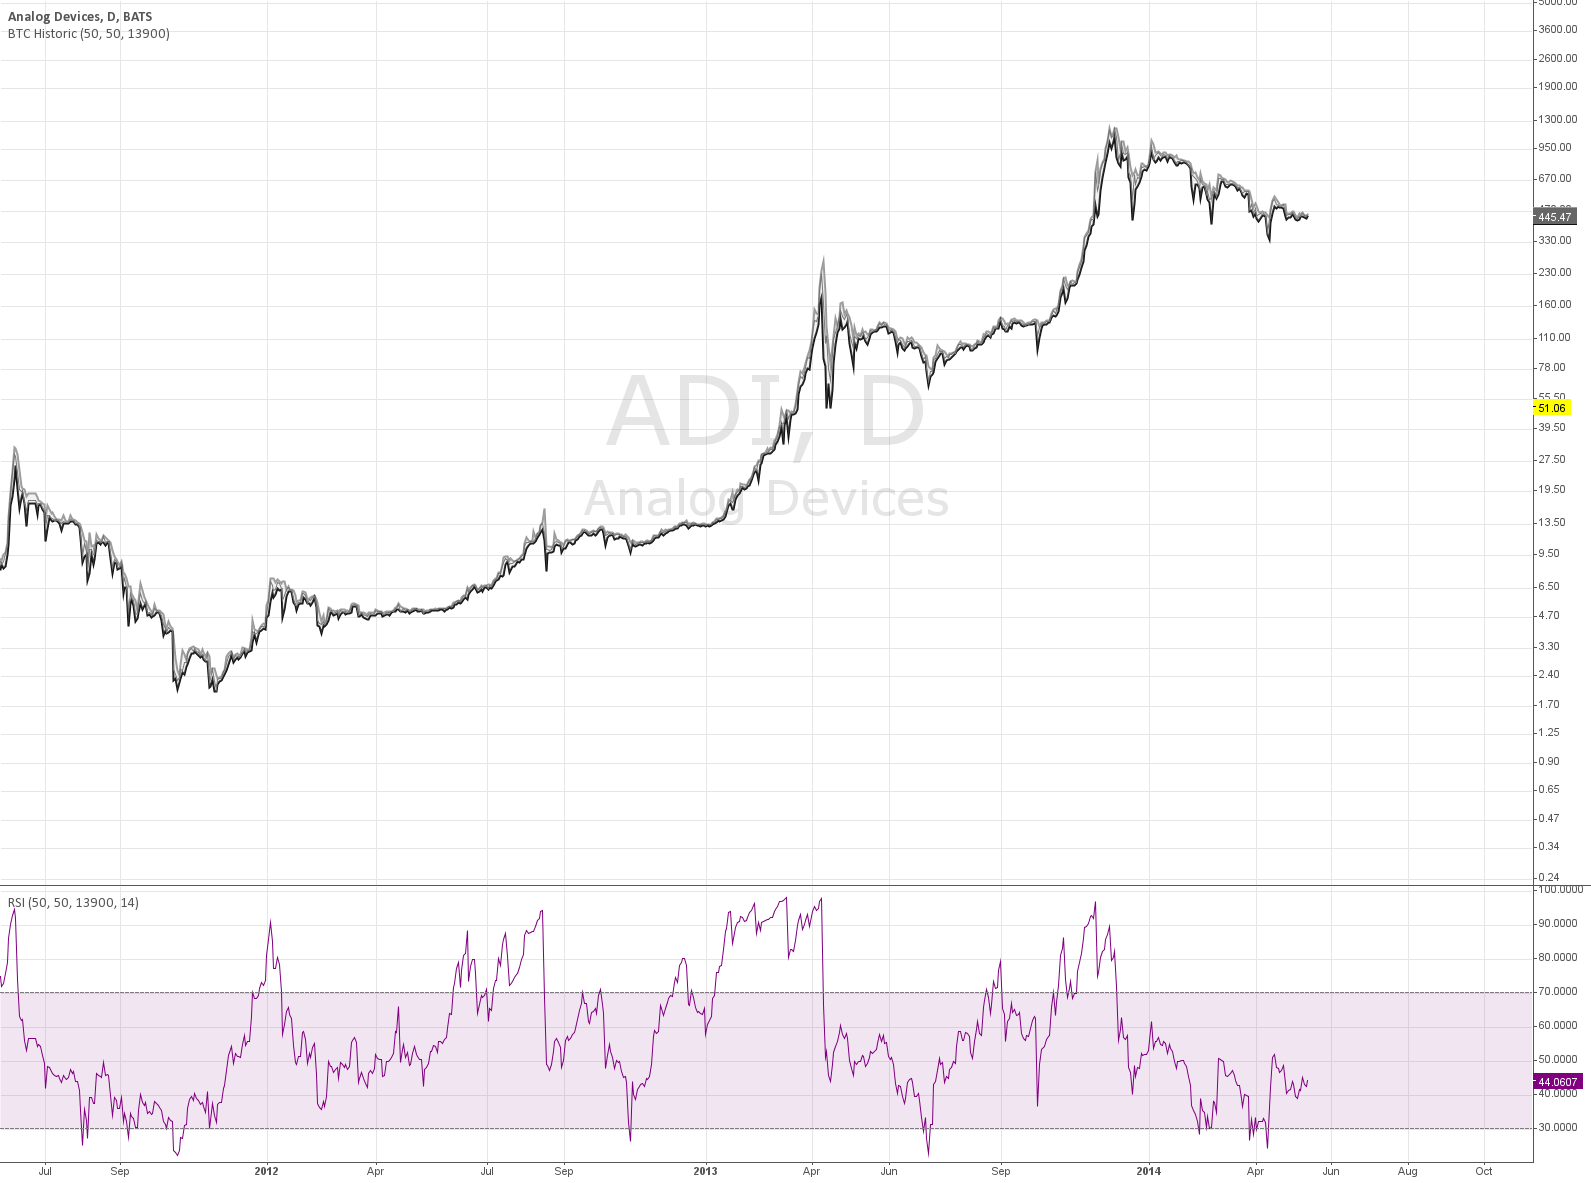 Fixed Historical BTC Data with RSI + Lower Timeframes